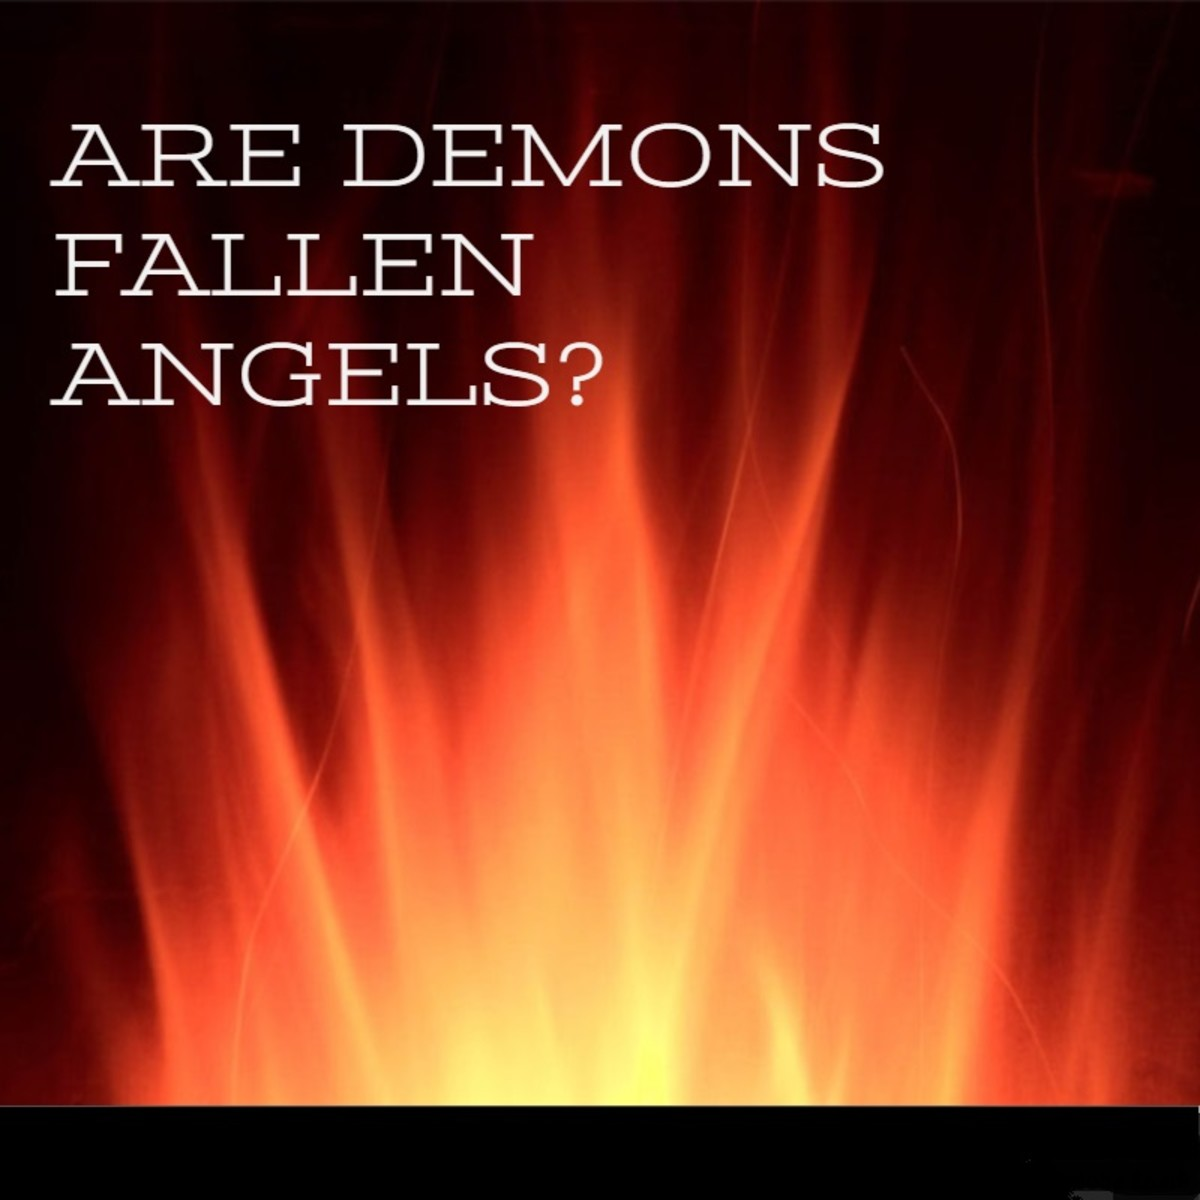 Are Demons Fallen Angels?